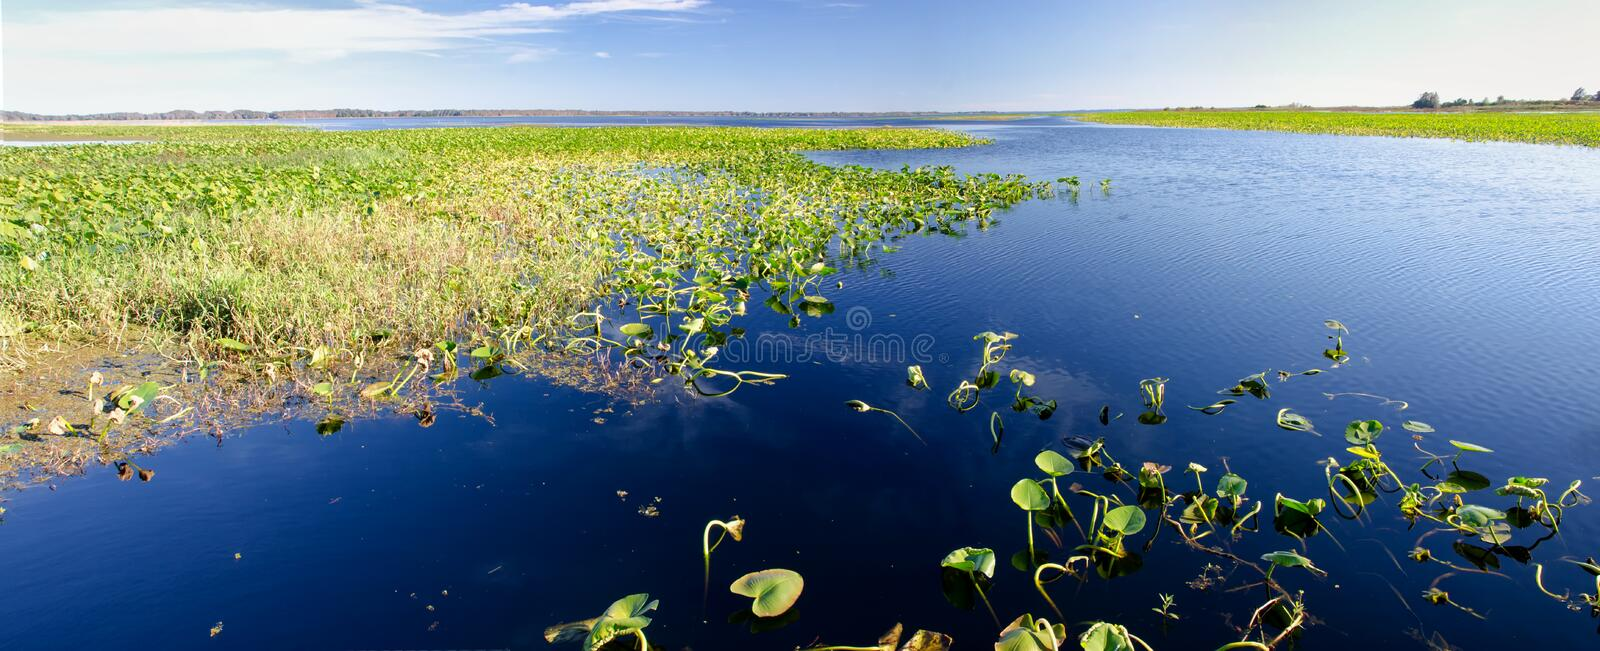 Panorama of lily pads on a freshwater lake, Florida stock photo